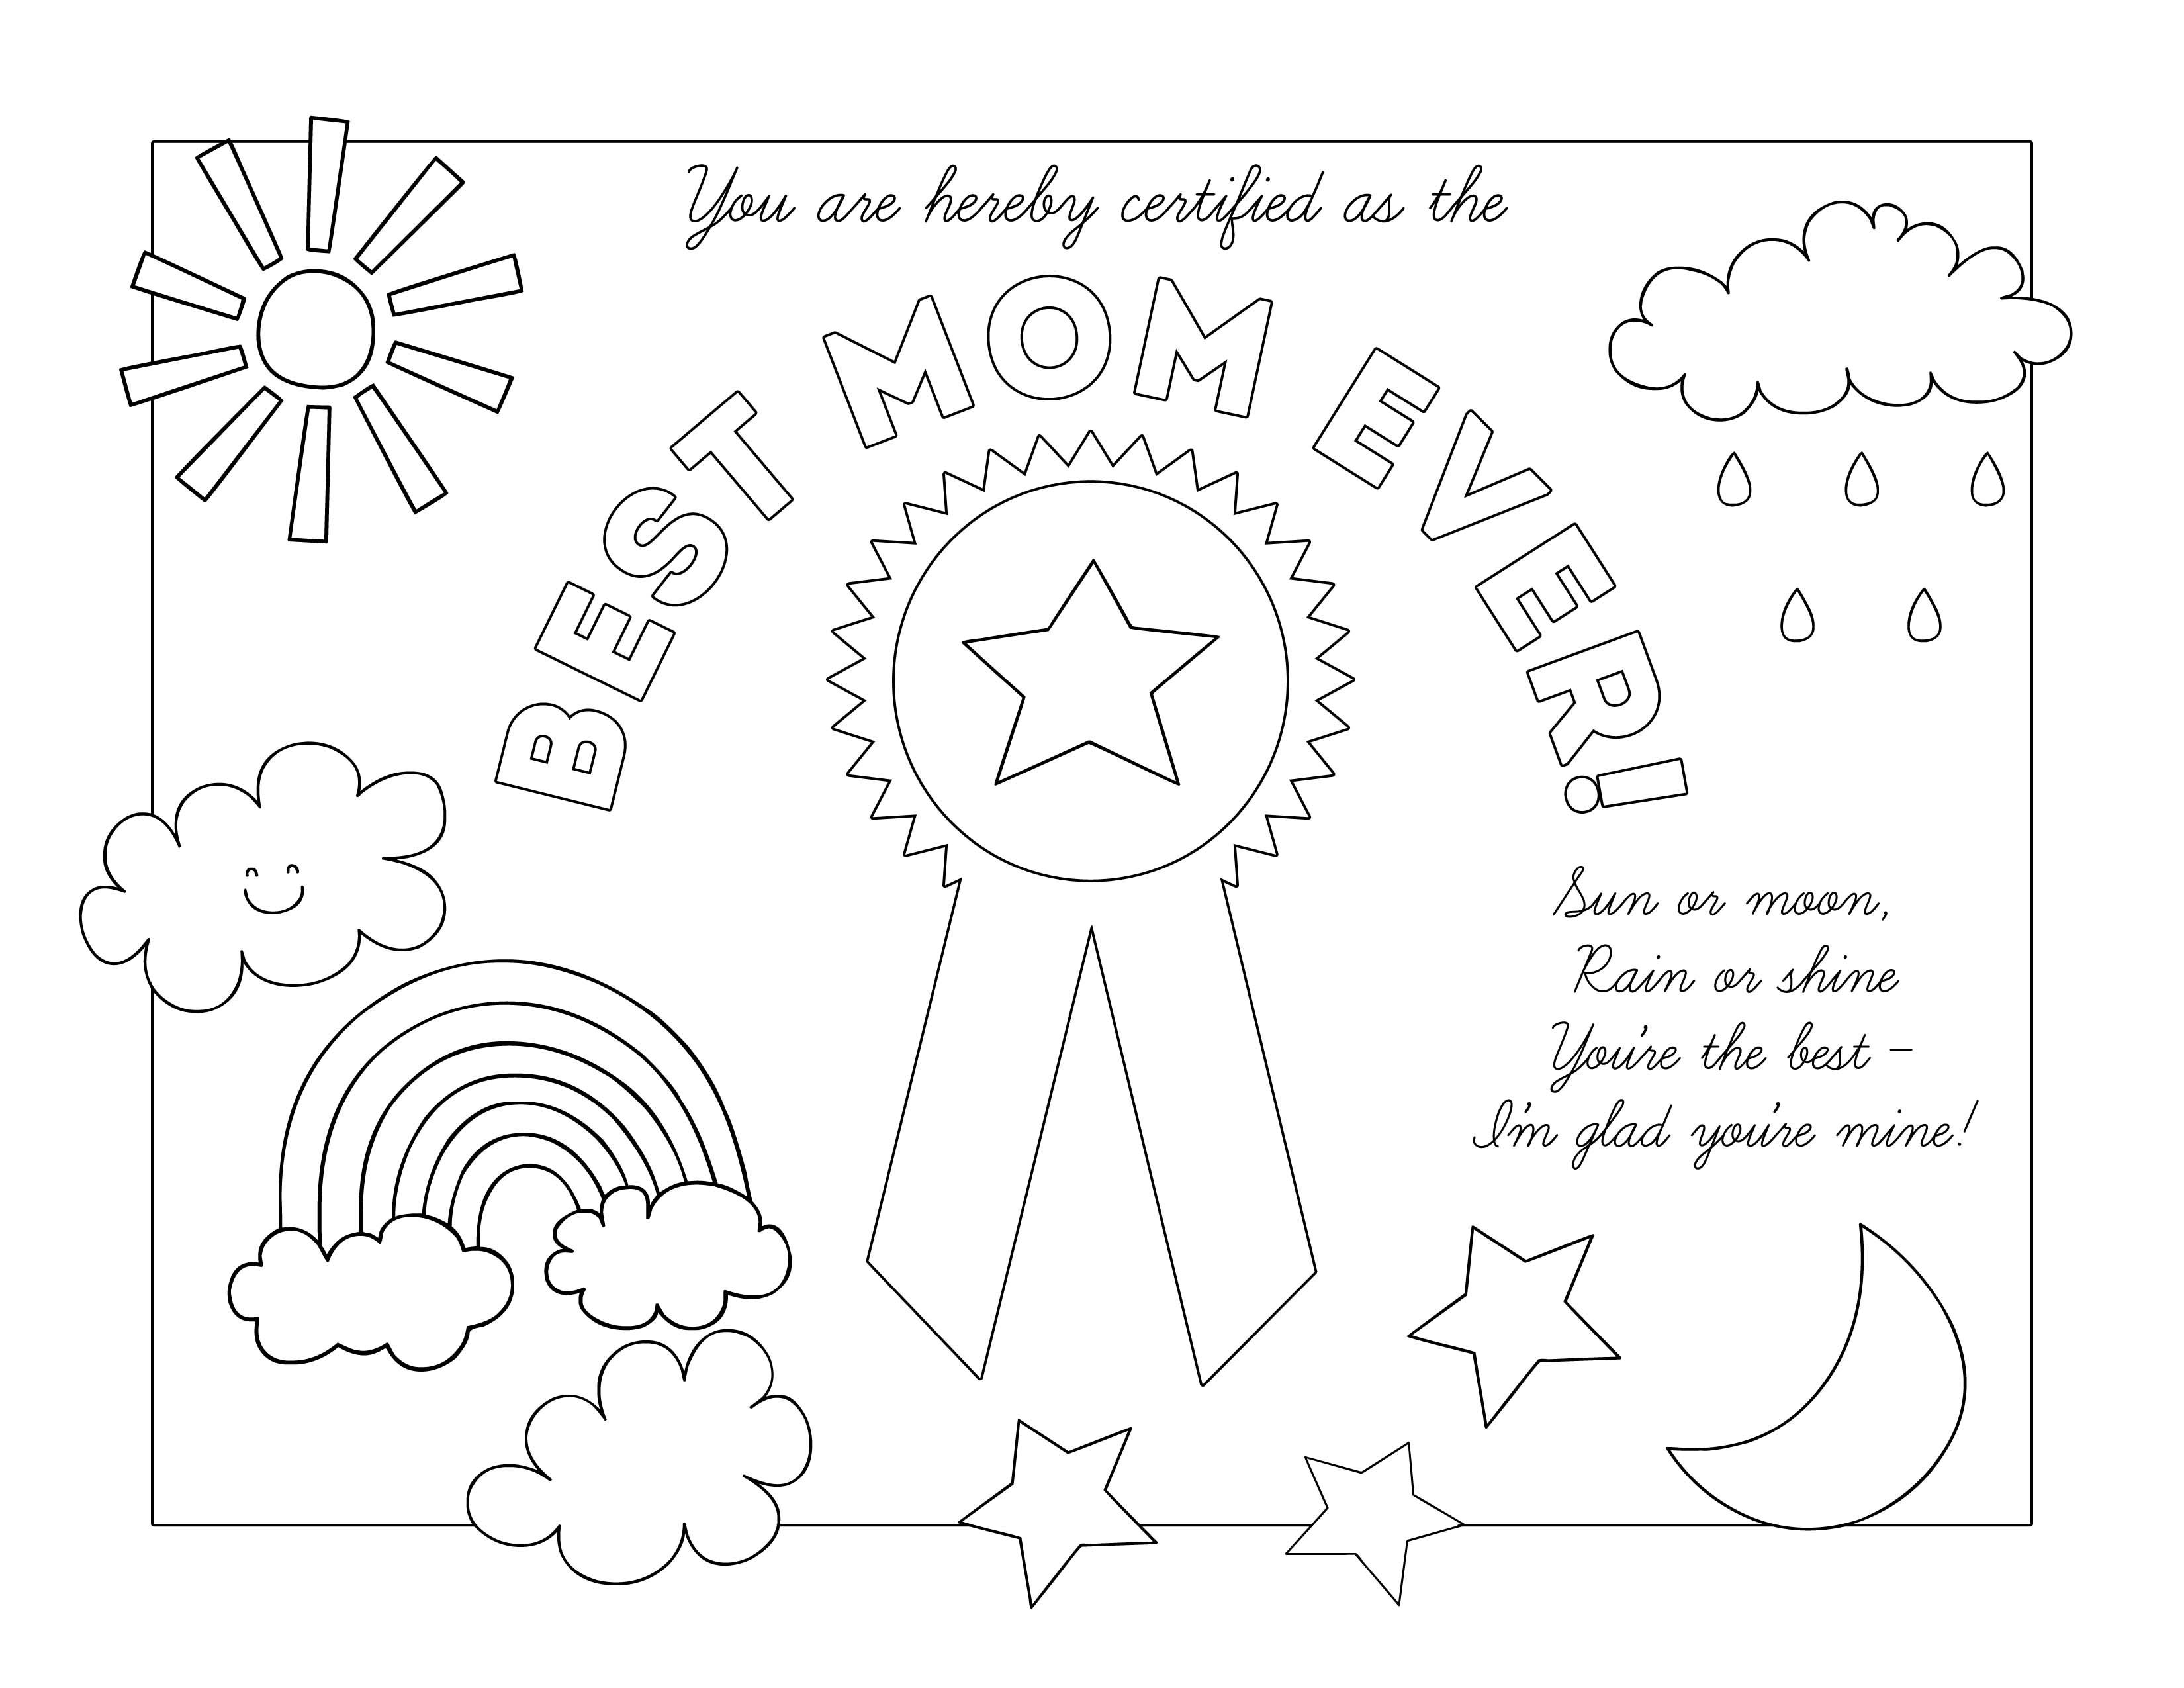 coolest coloring pages ever | Best Mom Ever Weather Certificate | Activity days ...